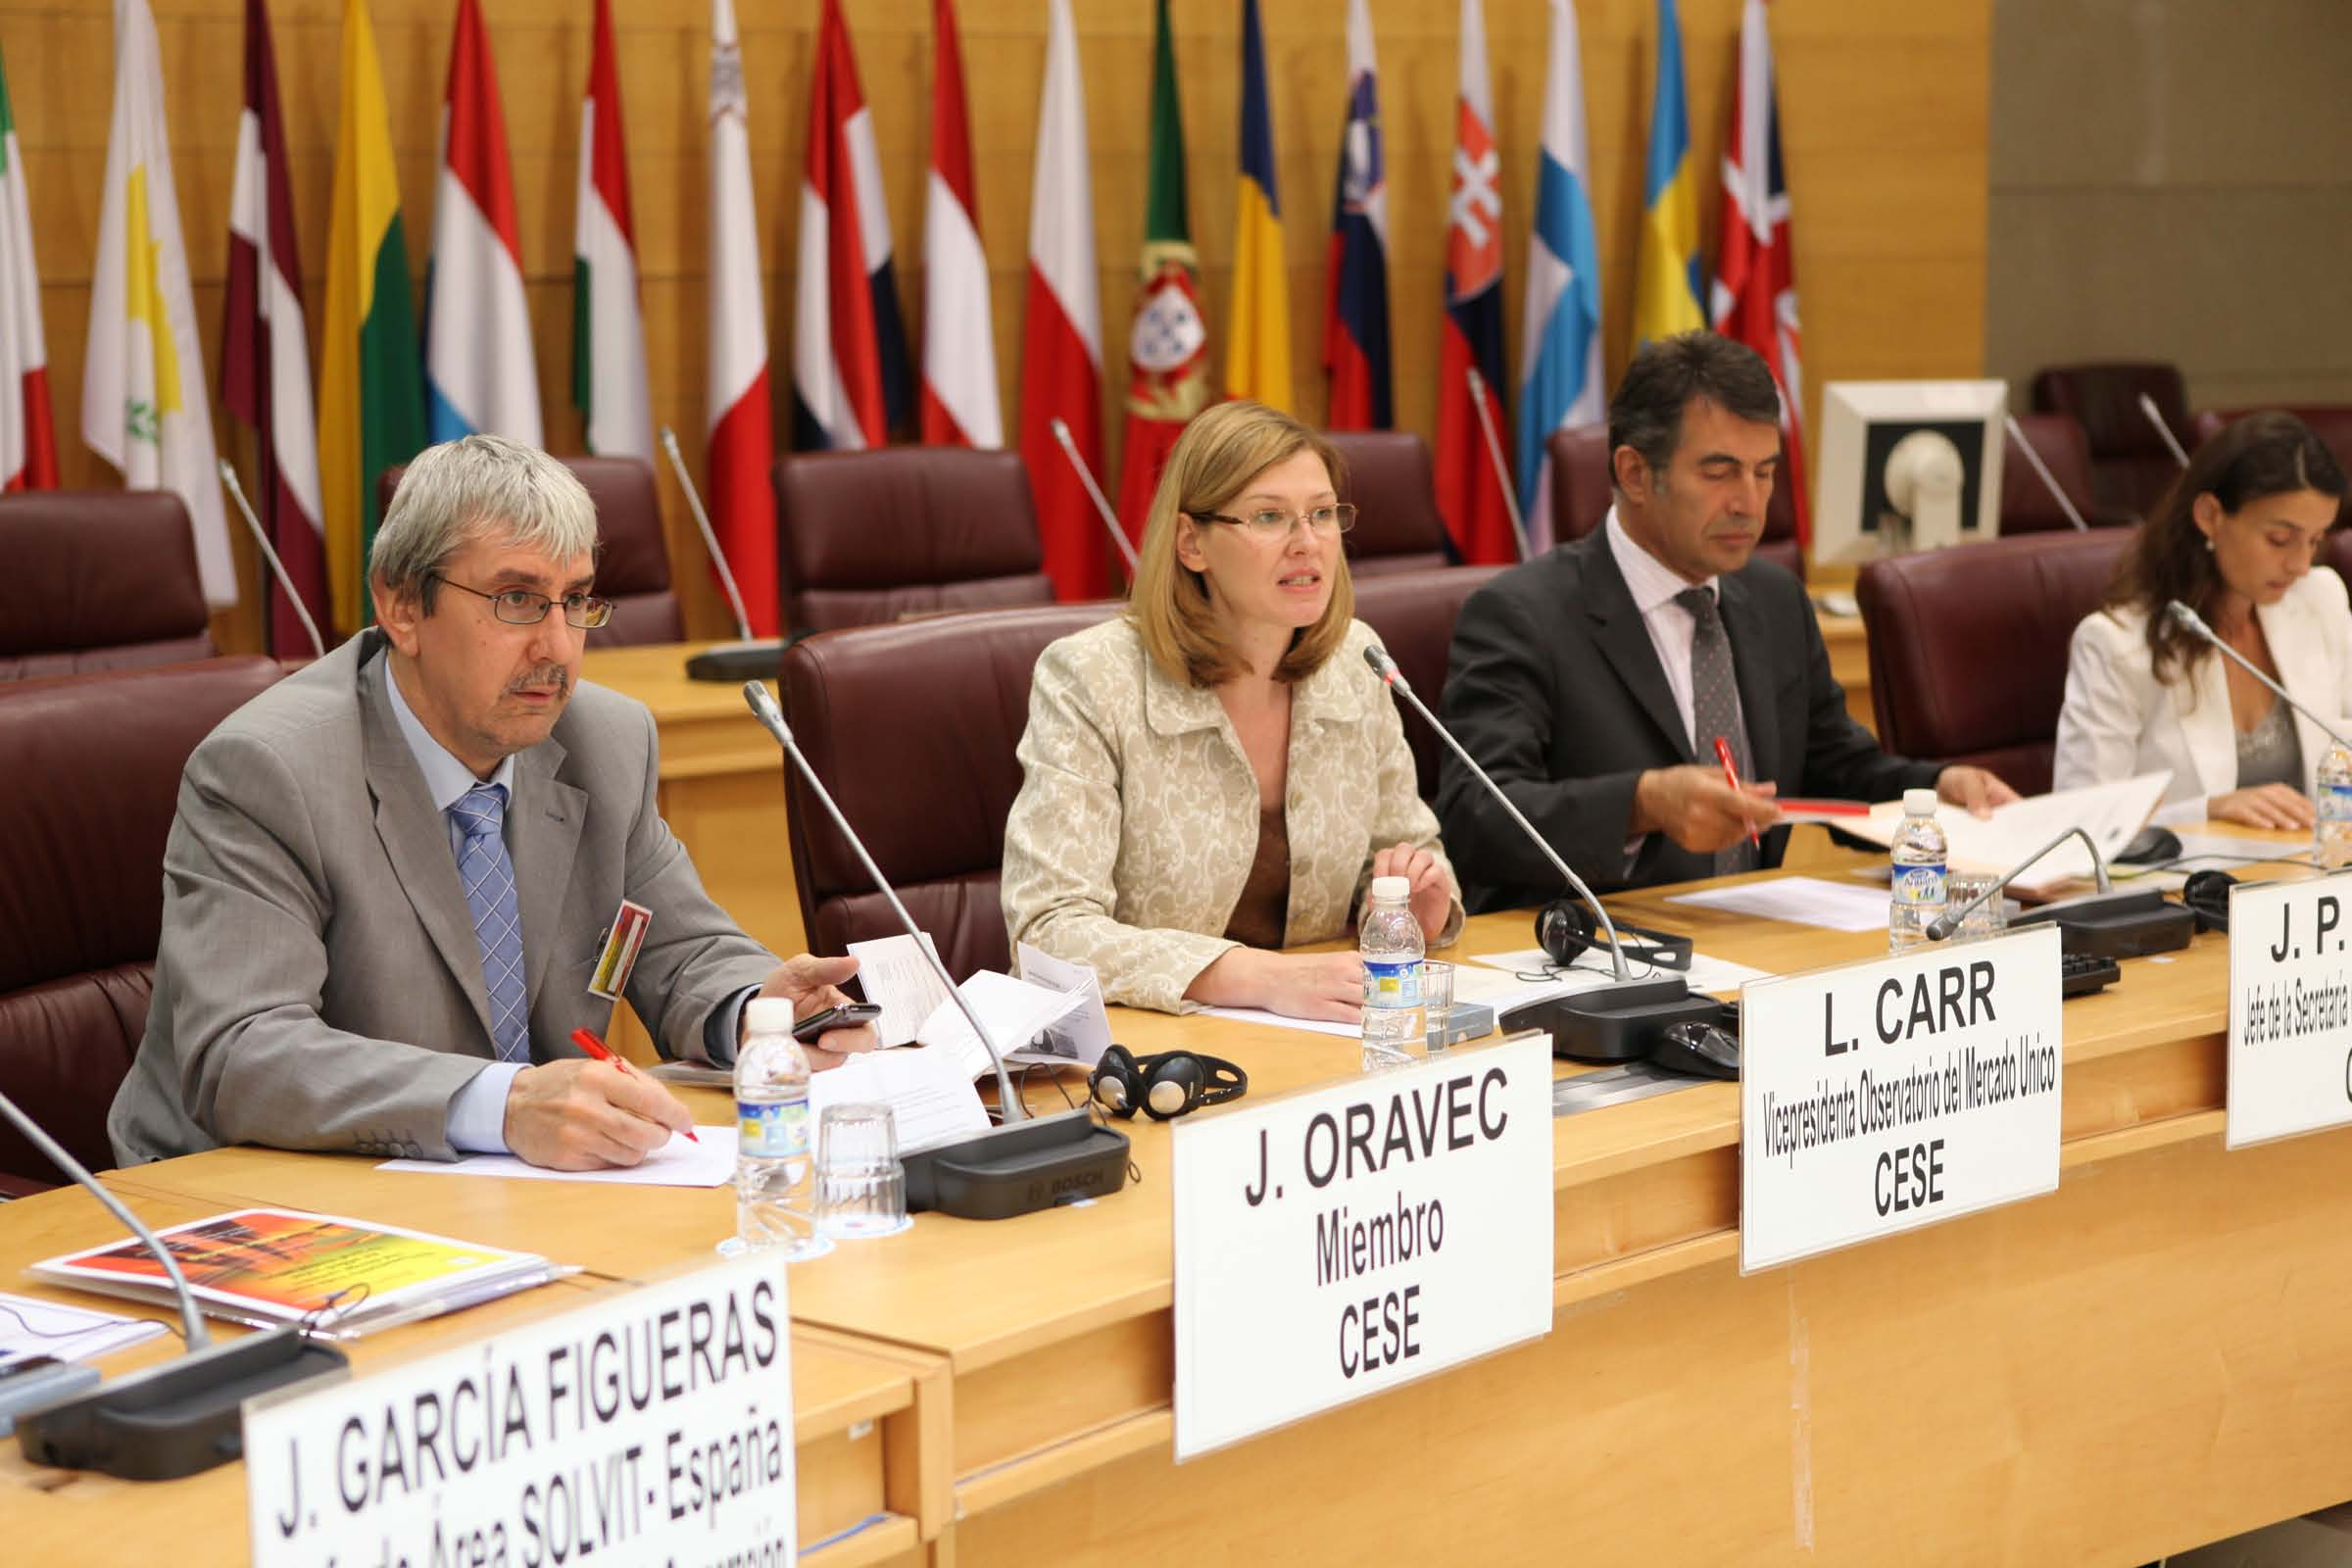 From left to right: Ján Oravec, EESC member, Liina Carr, SMO Vice-Chair, Jean-Pierre Faure, SMO secretariat, Cristina García, OHIM